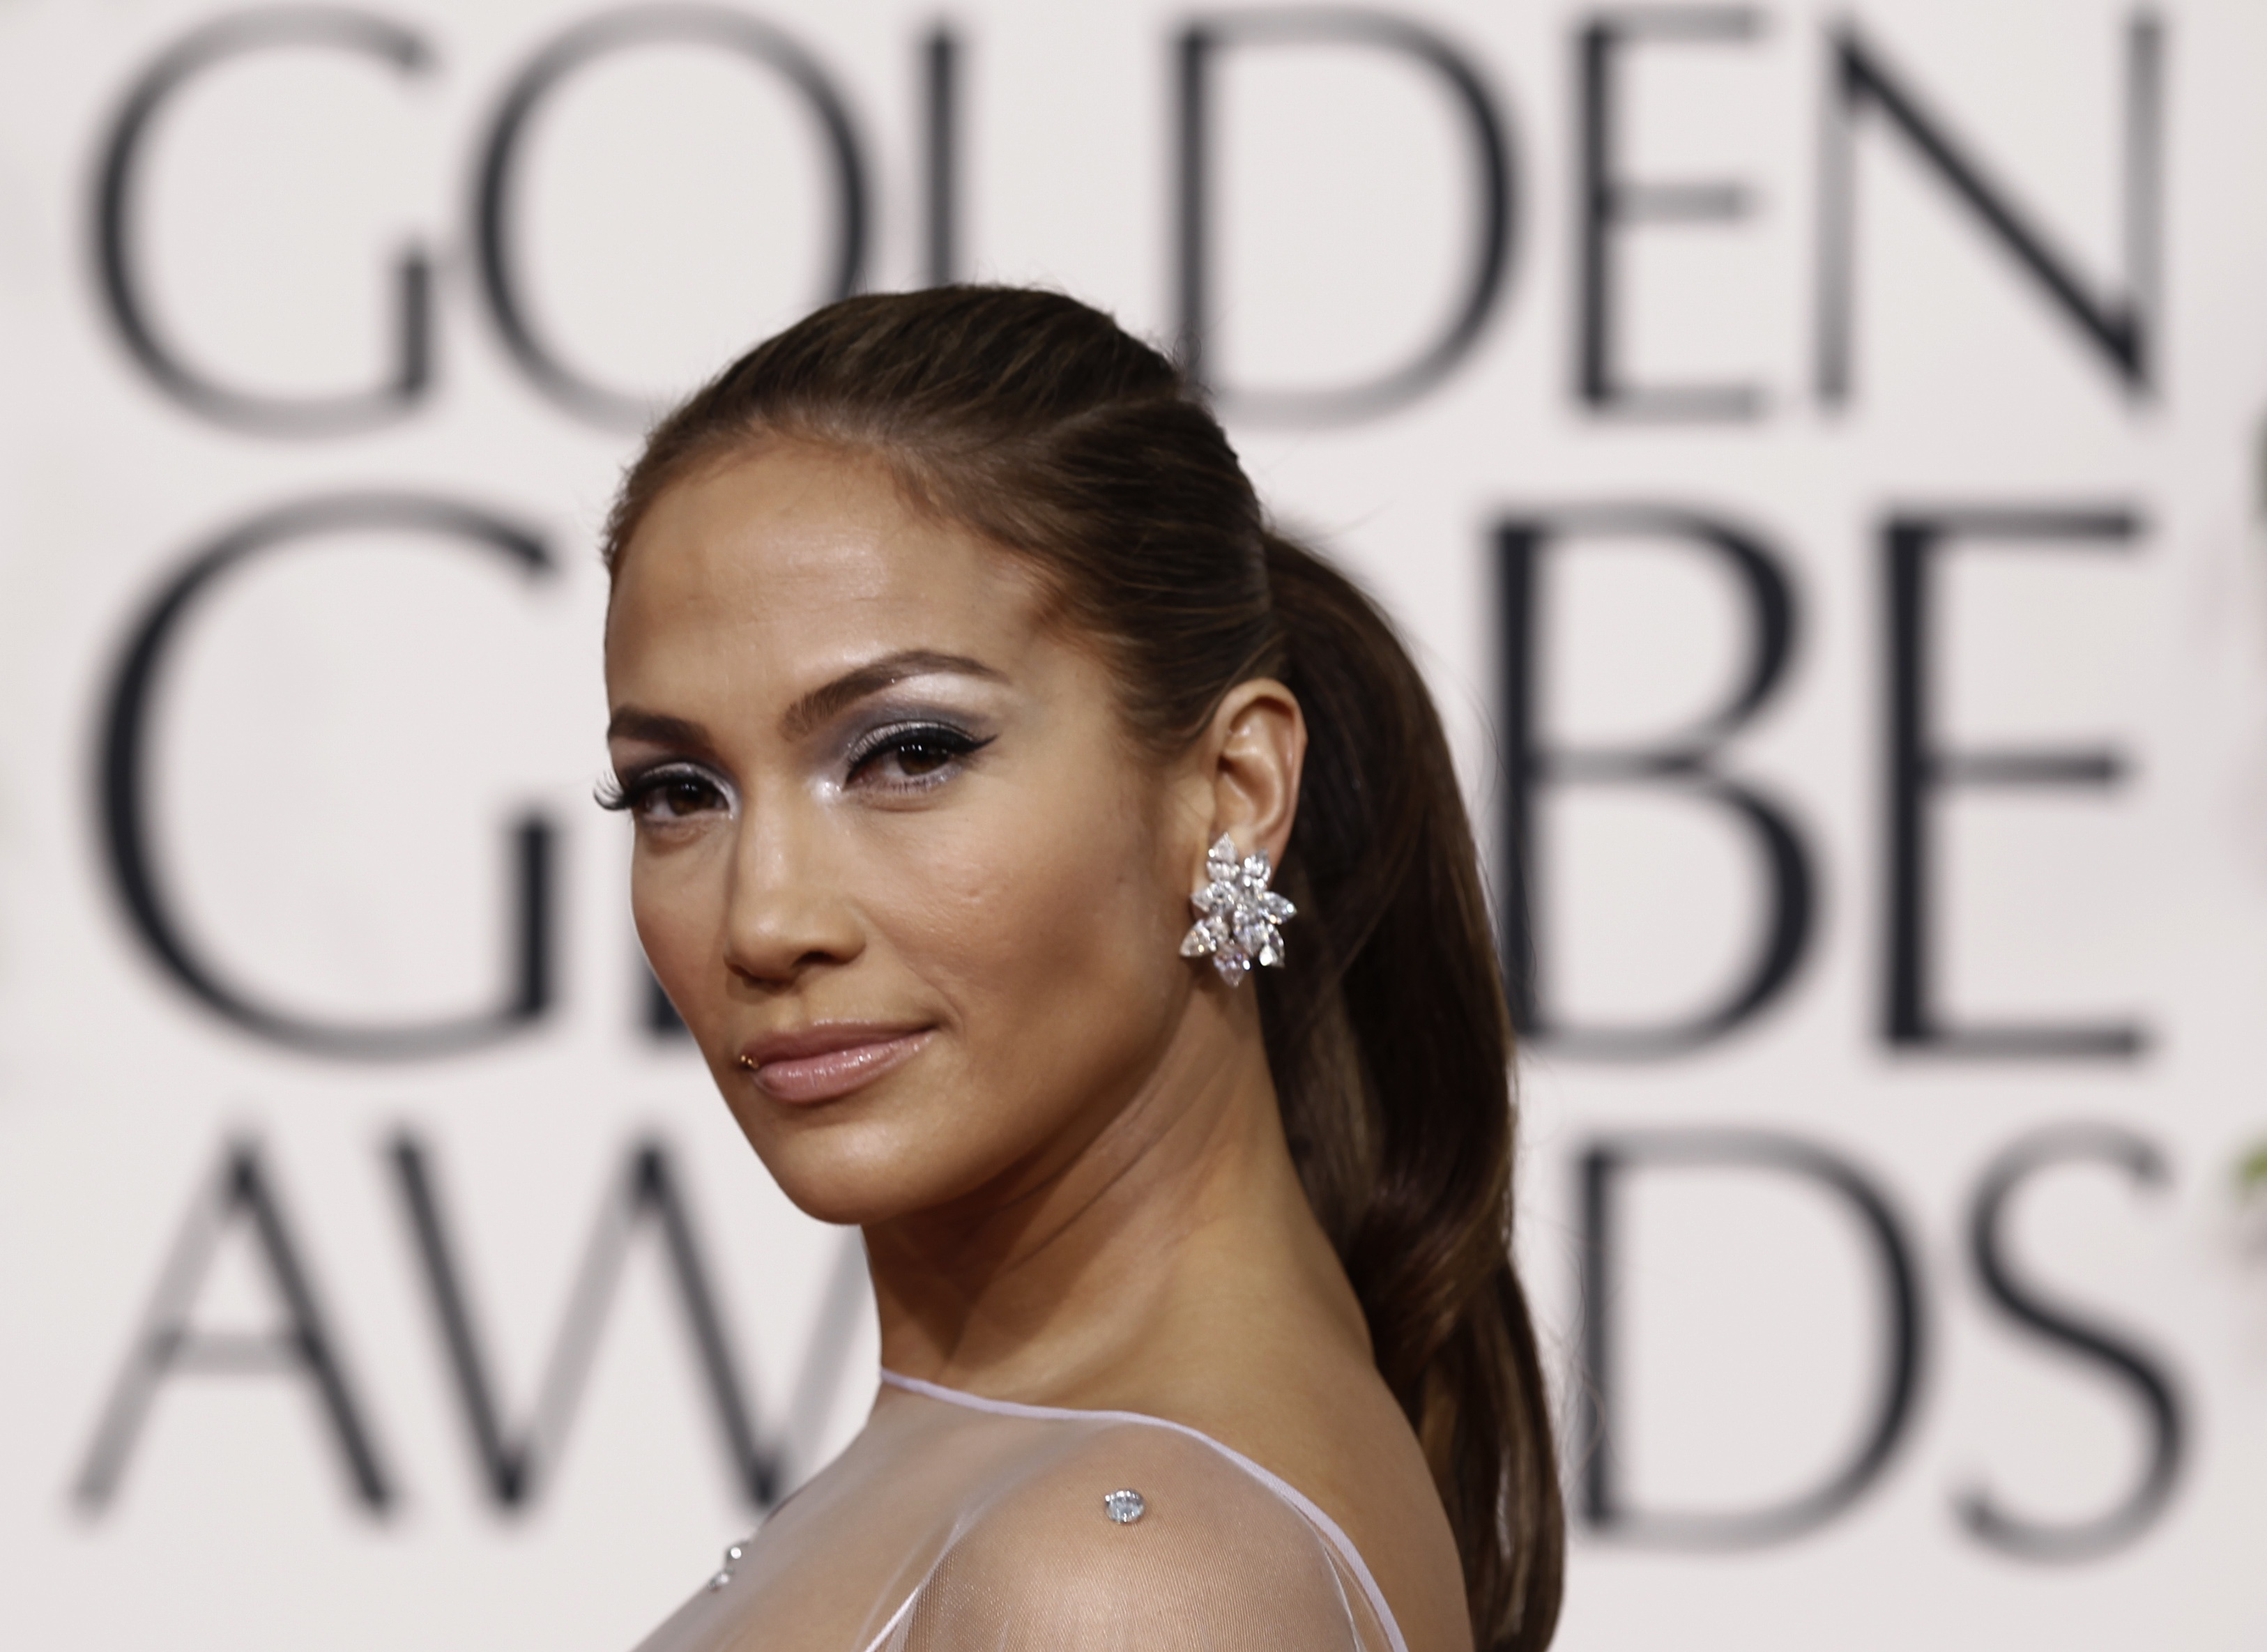 Jennifer Lopez photo #253103